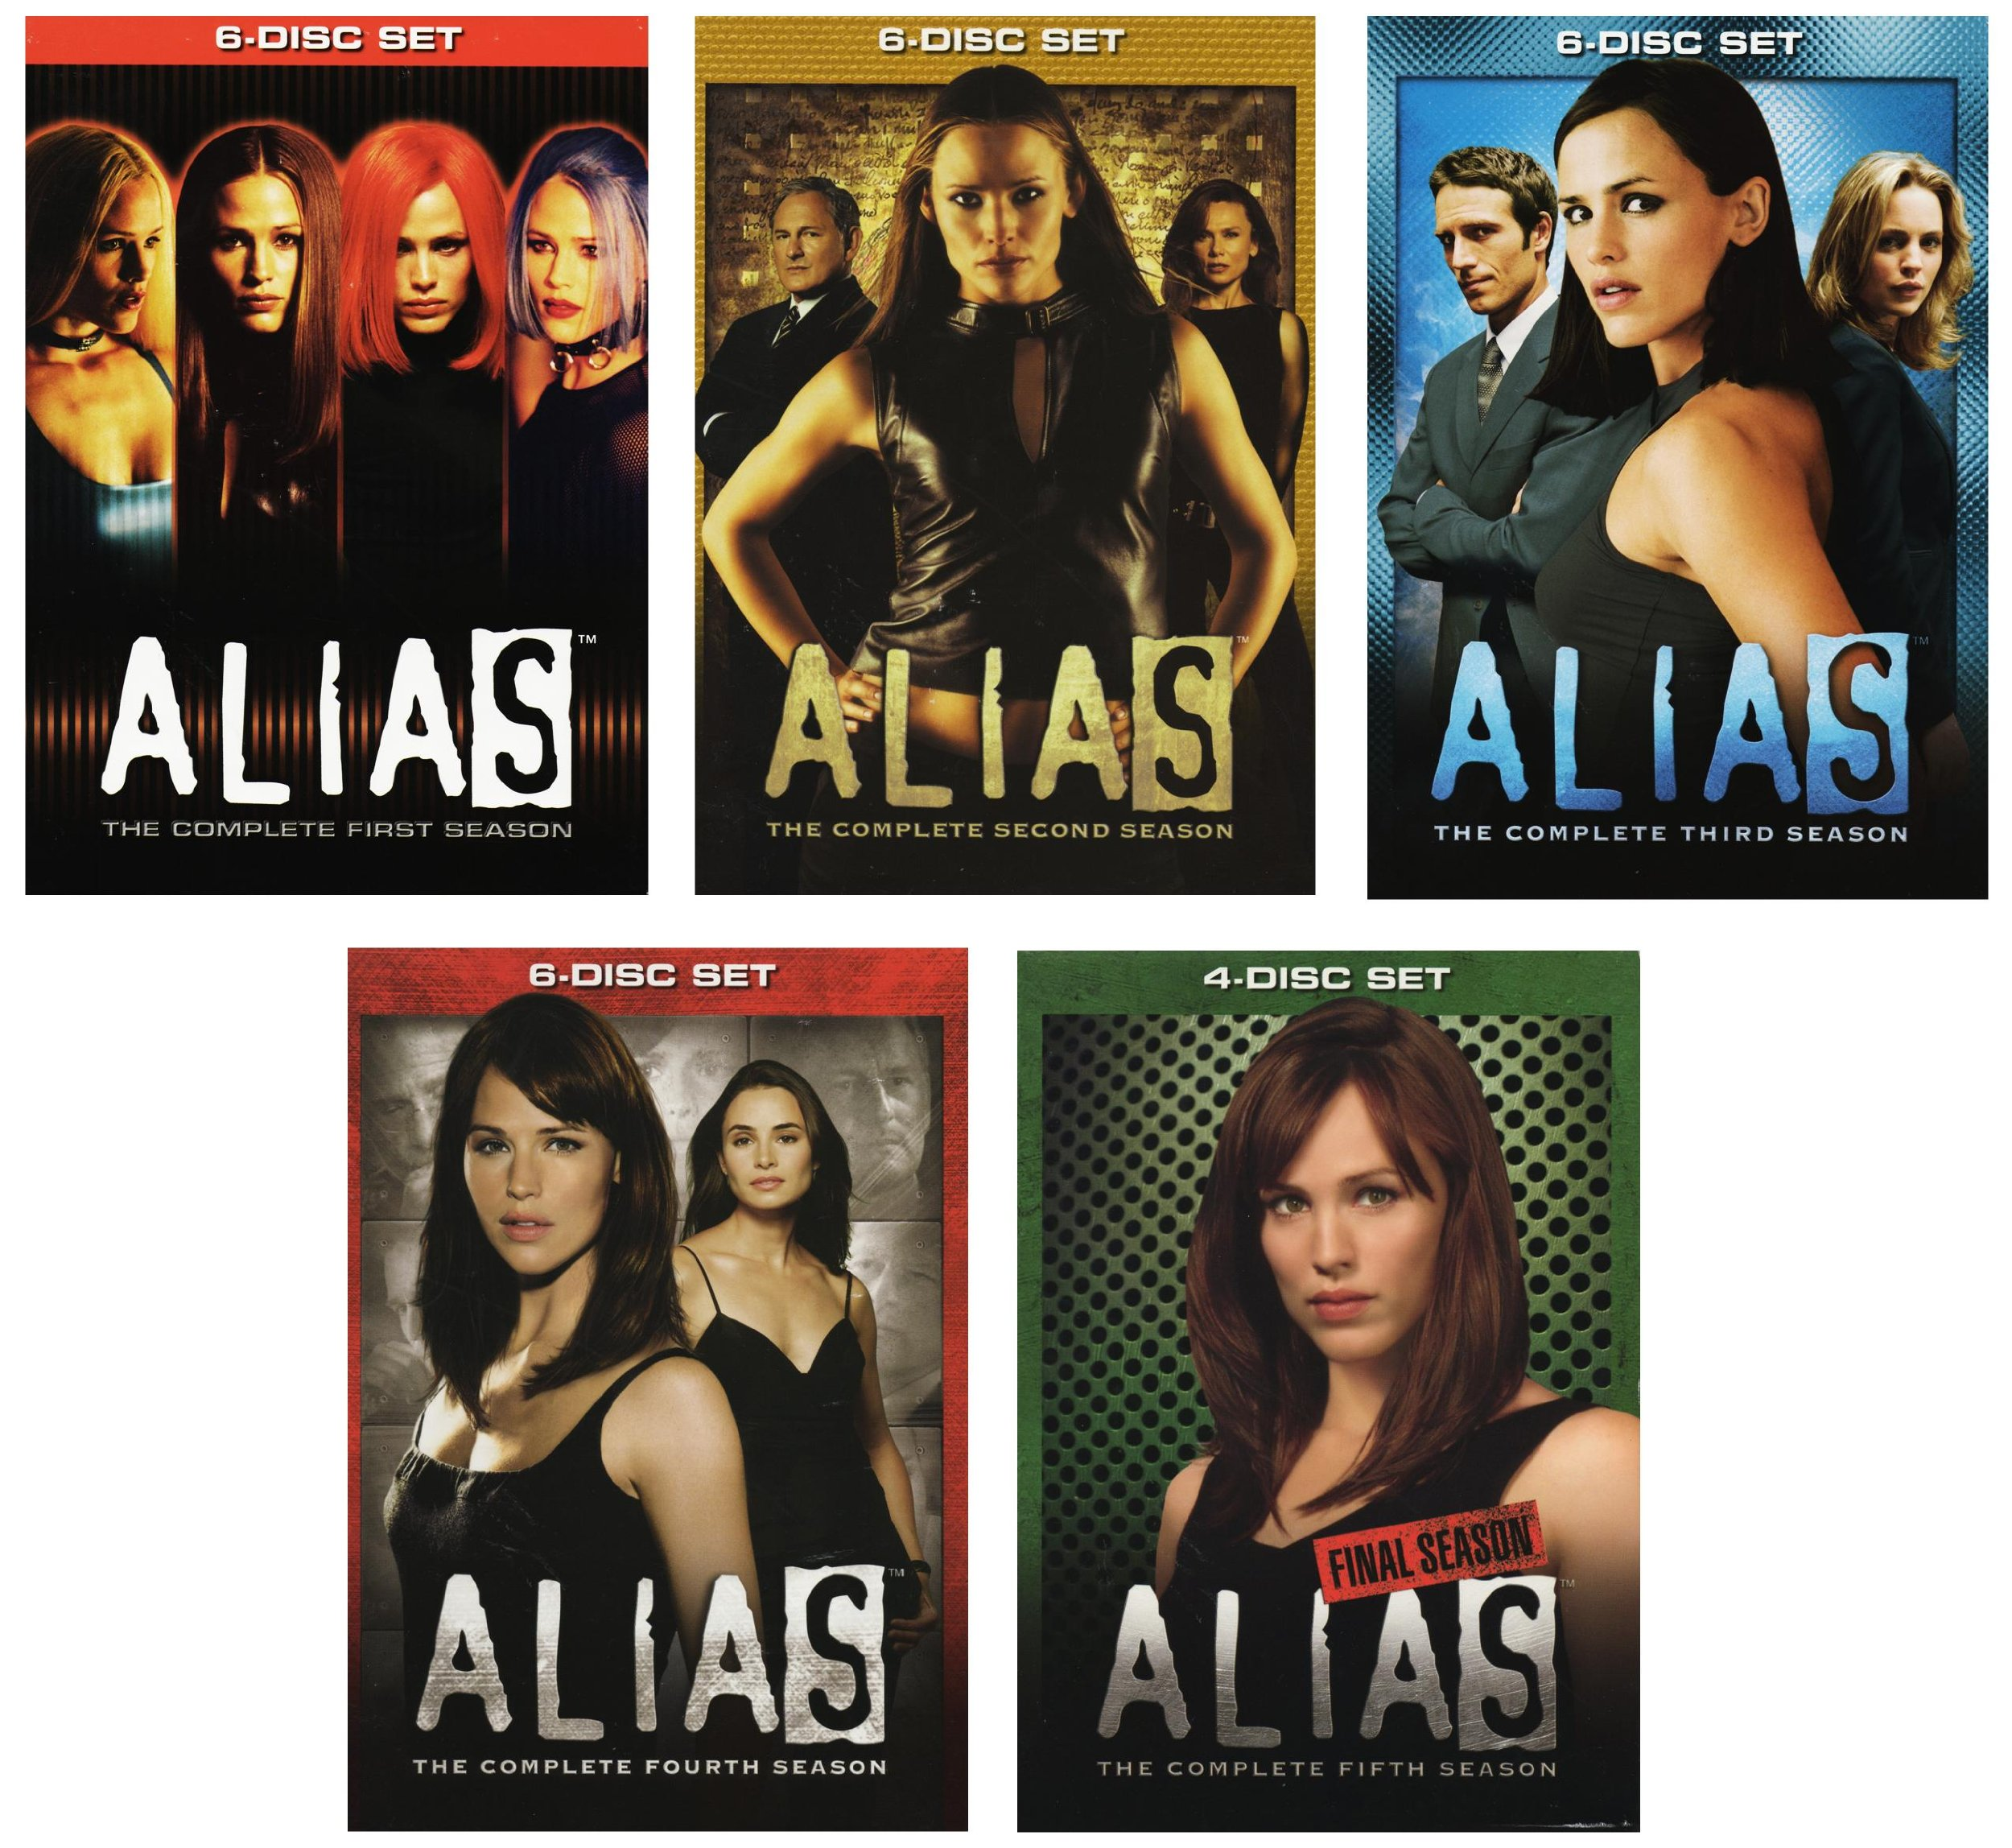 Alias - Seasons 1-5 (Complete Series) [DVD] Jennifer Garner; Victor Garber; book by Alias